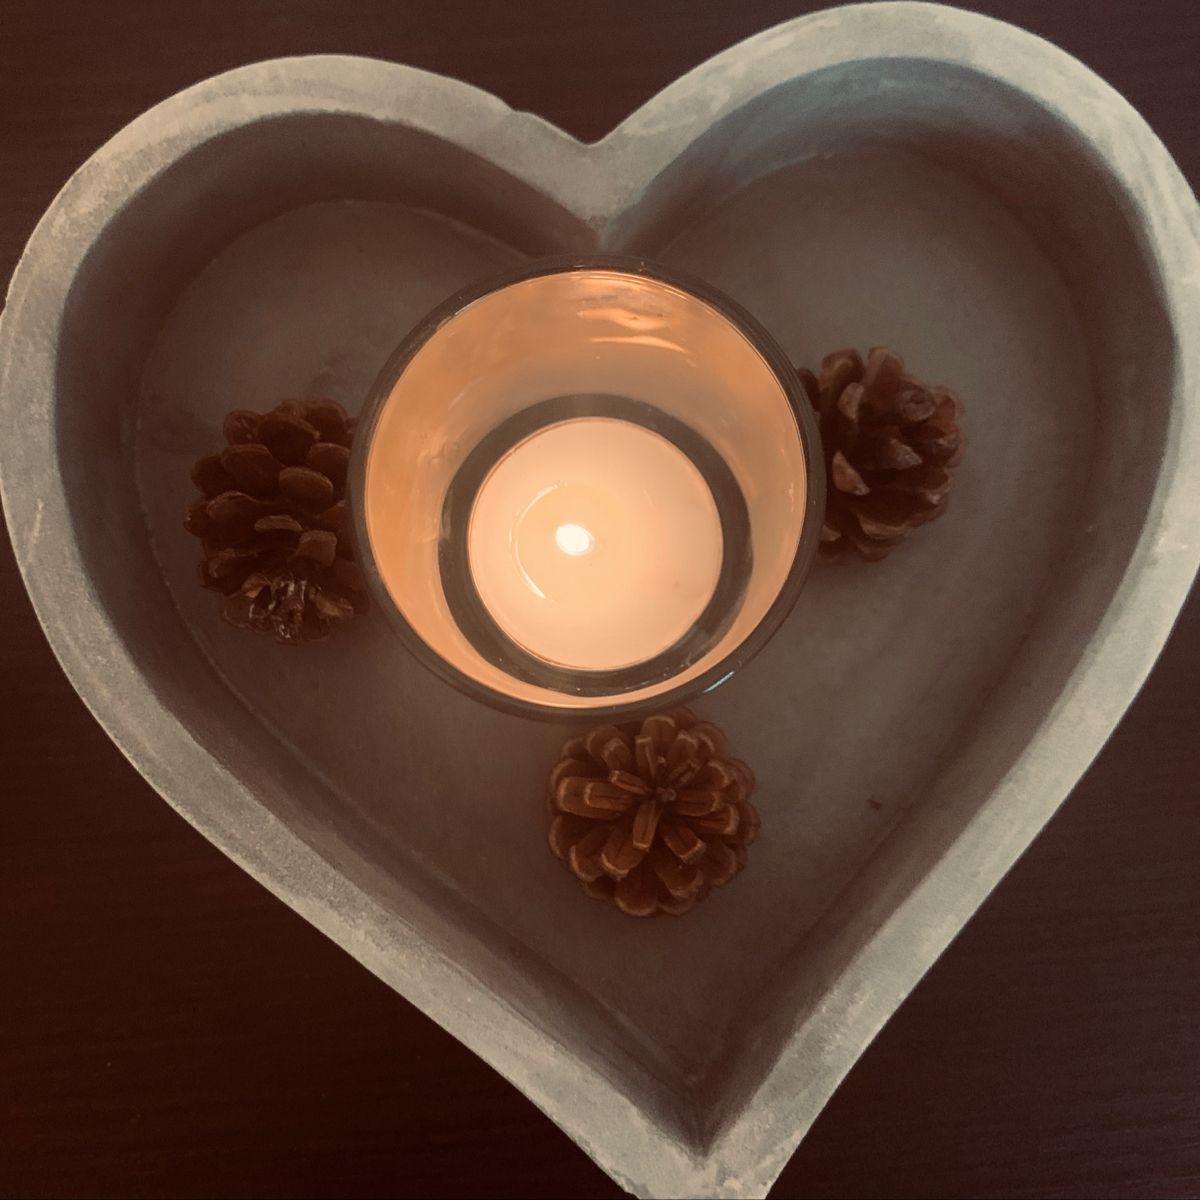 Medium decorative heart shaped cement tray with a rustic finish. Add smaller decorative pieces or use for candles or flowers to decorate your table or shelf!